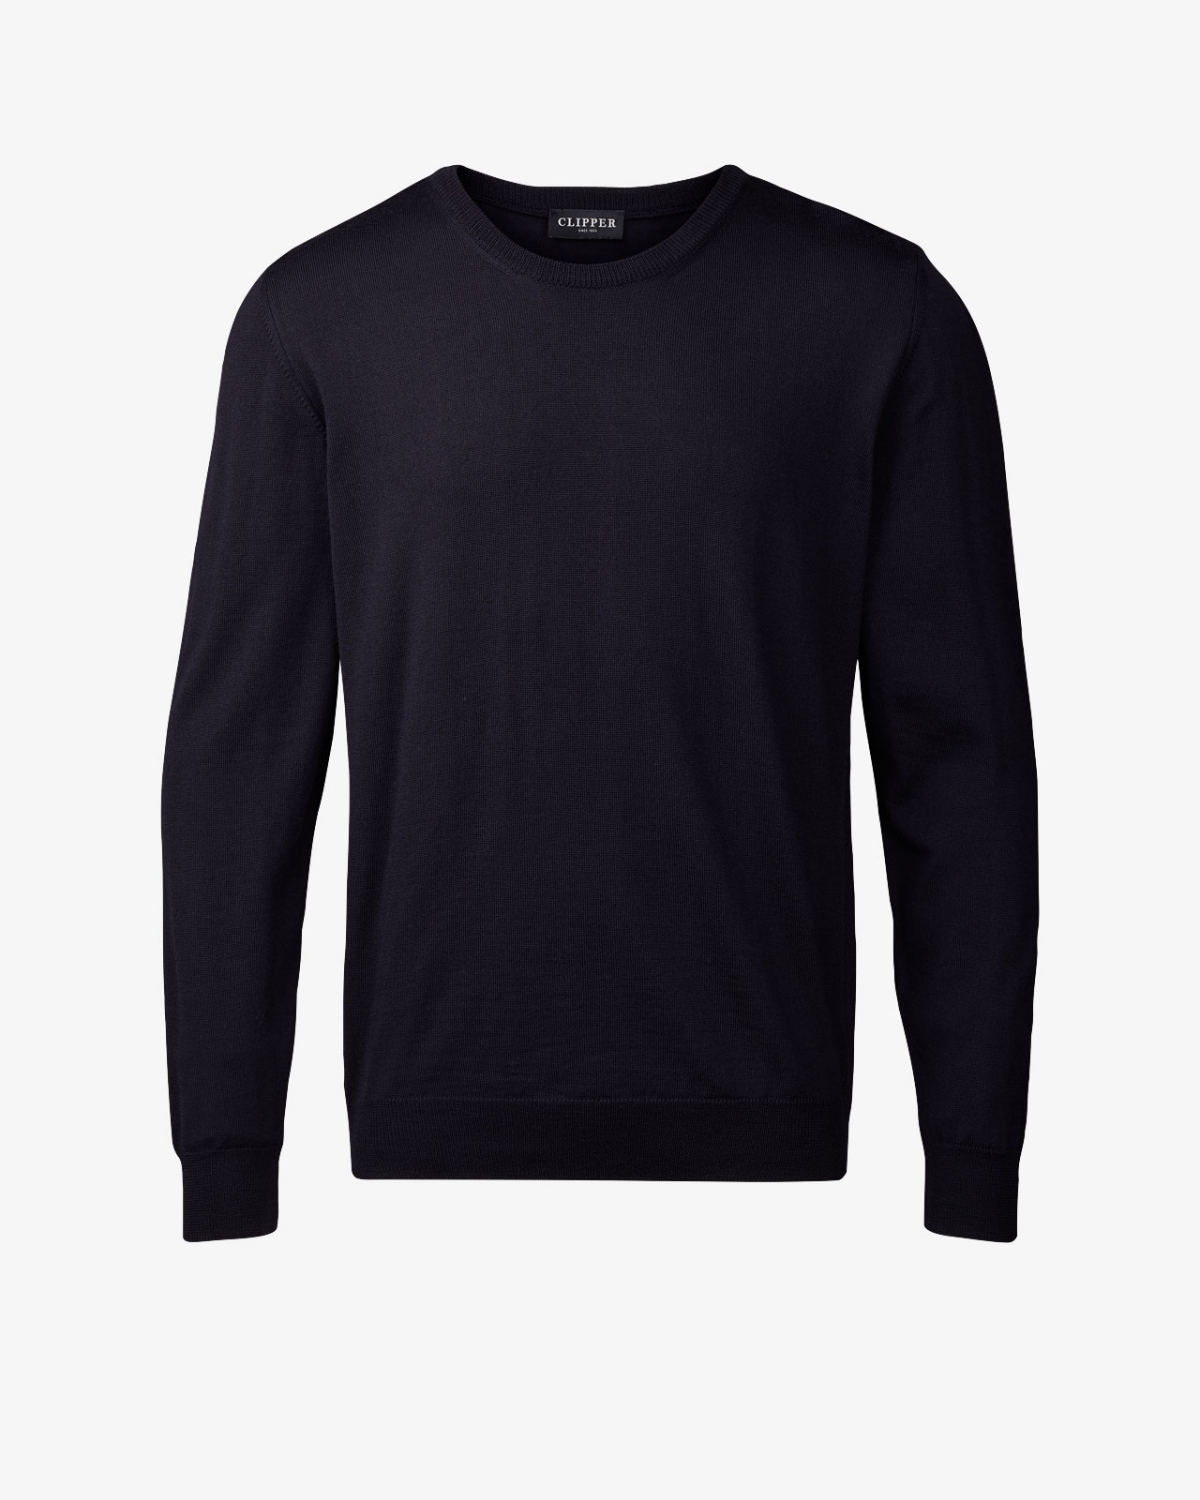 Clipper Sweater - Navy